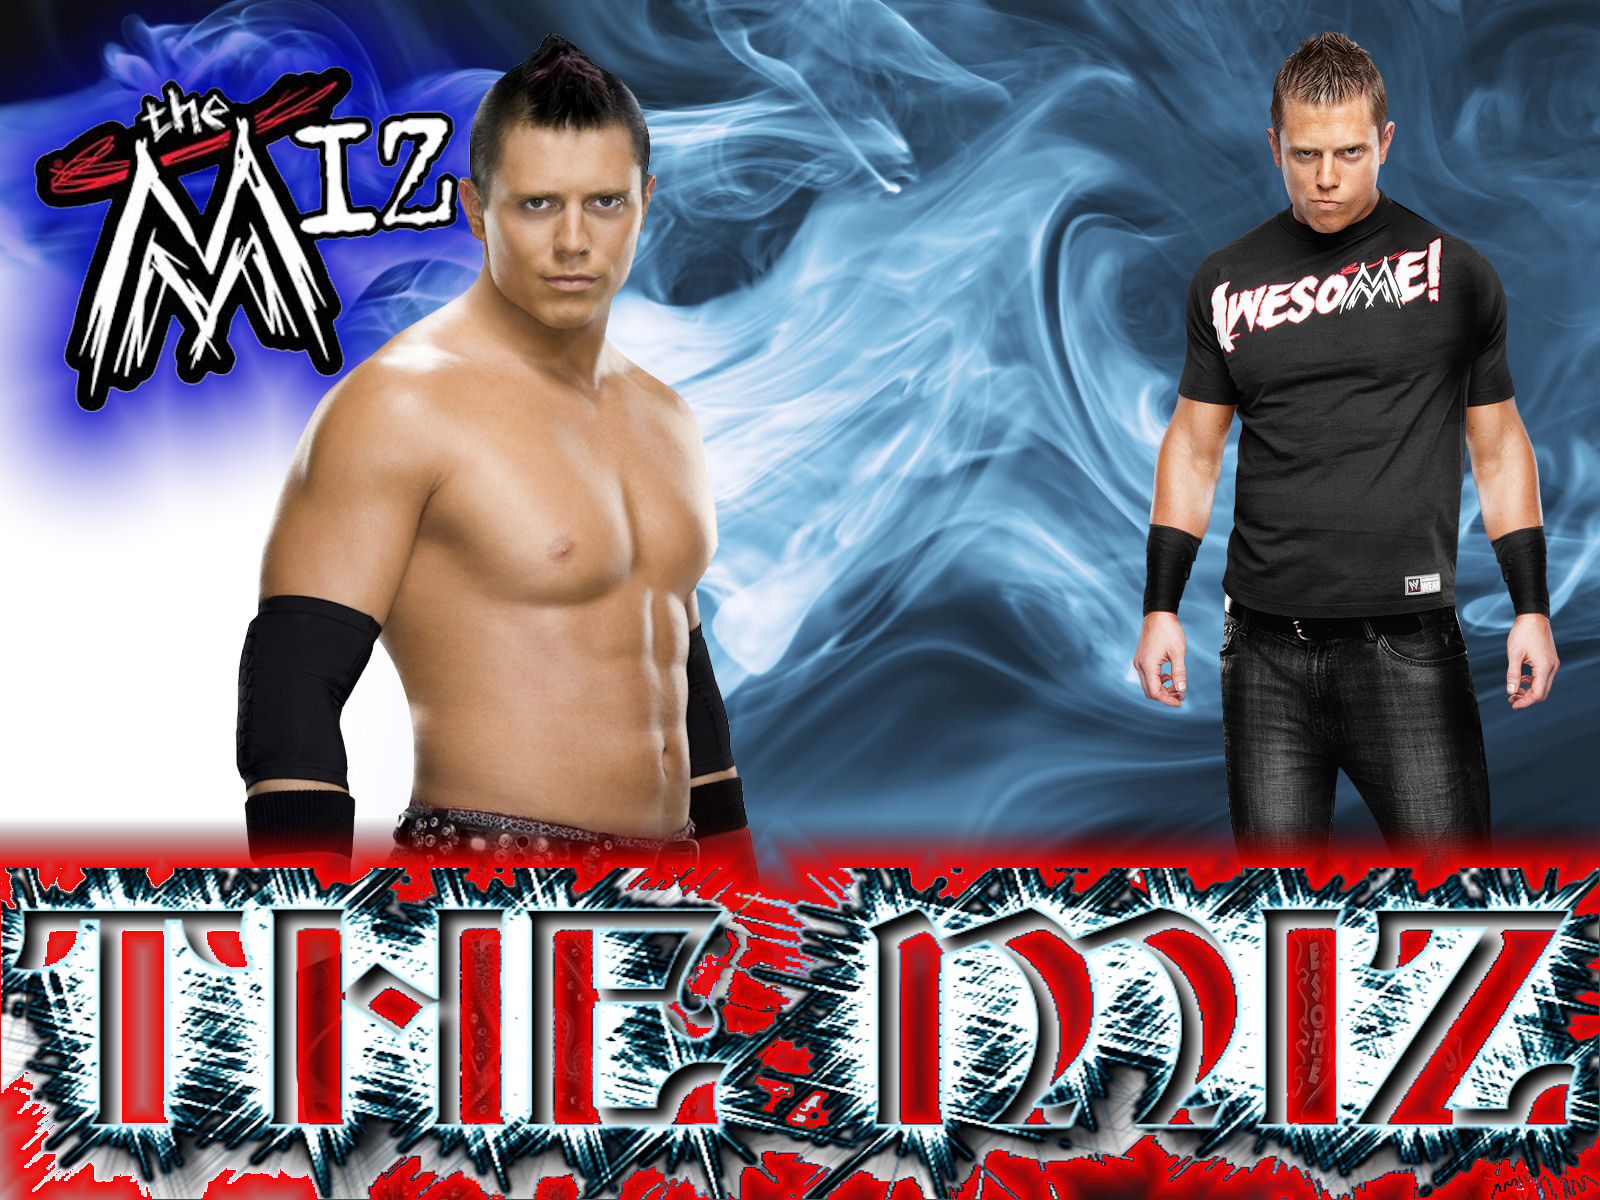 http://images5.fanpop.com/image/photos/31600000/The-Miz-wwe-31689317-1600-1200.jpg